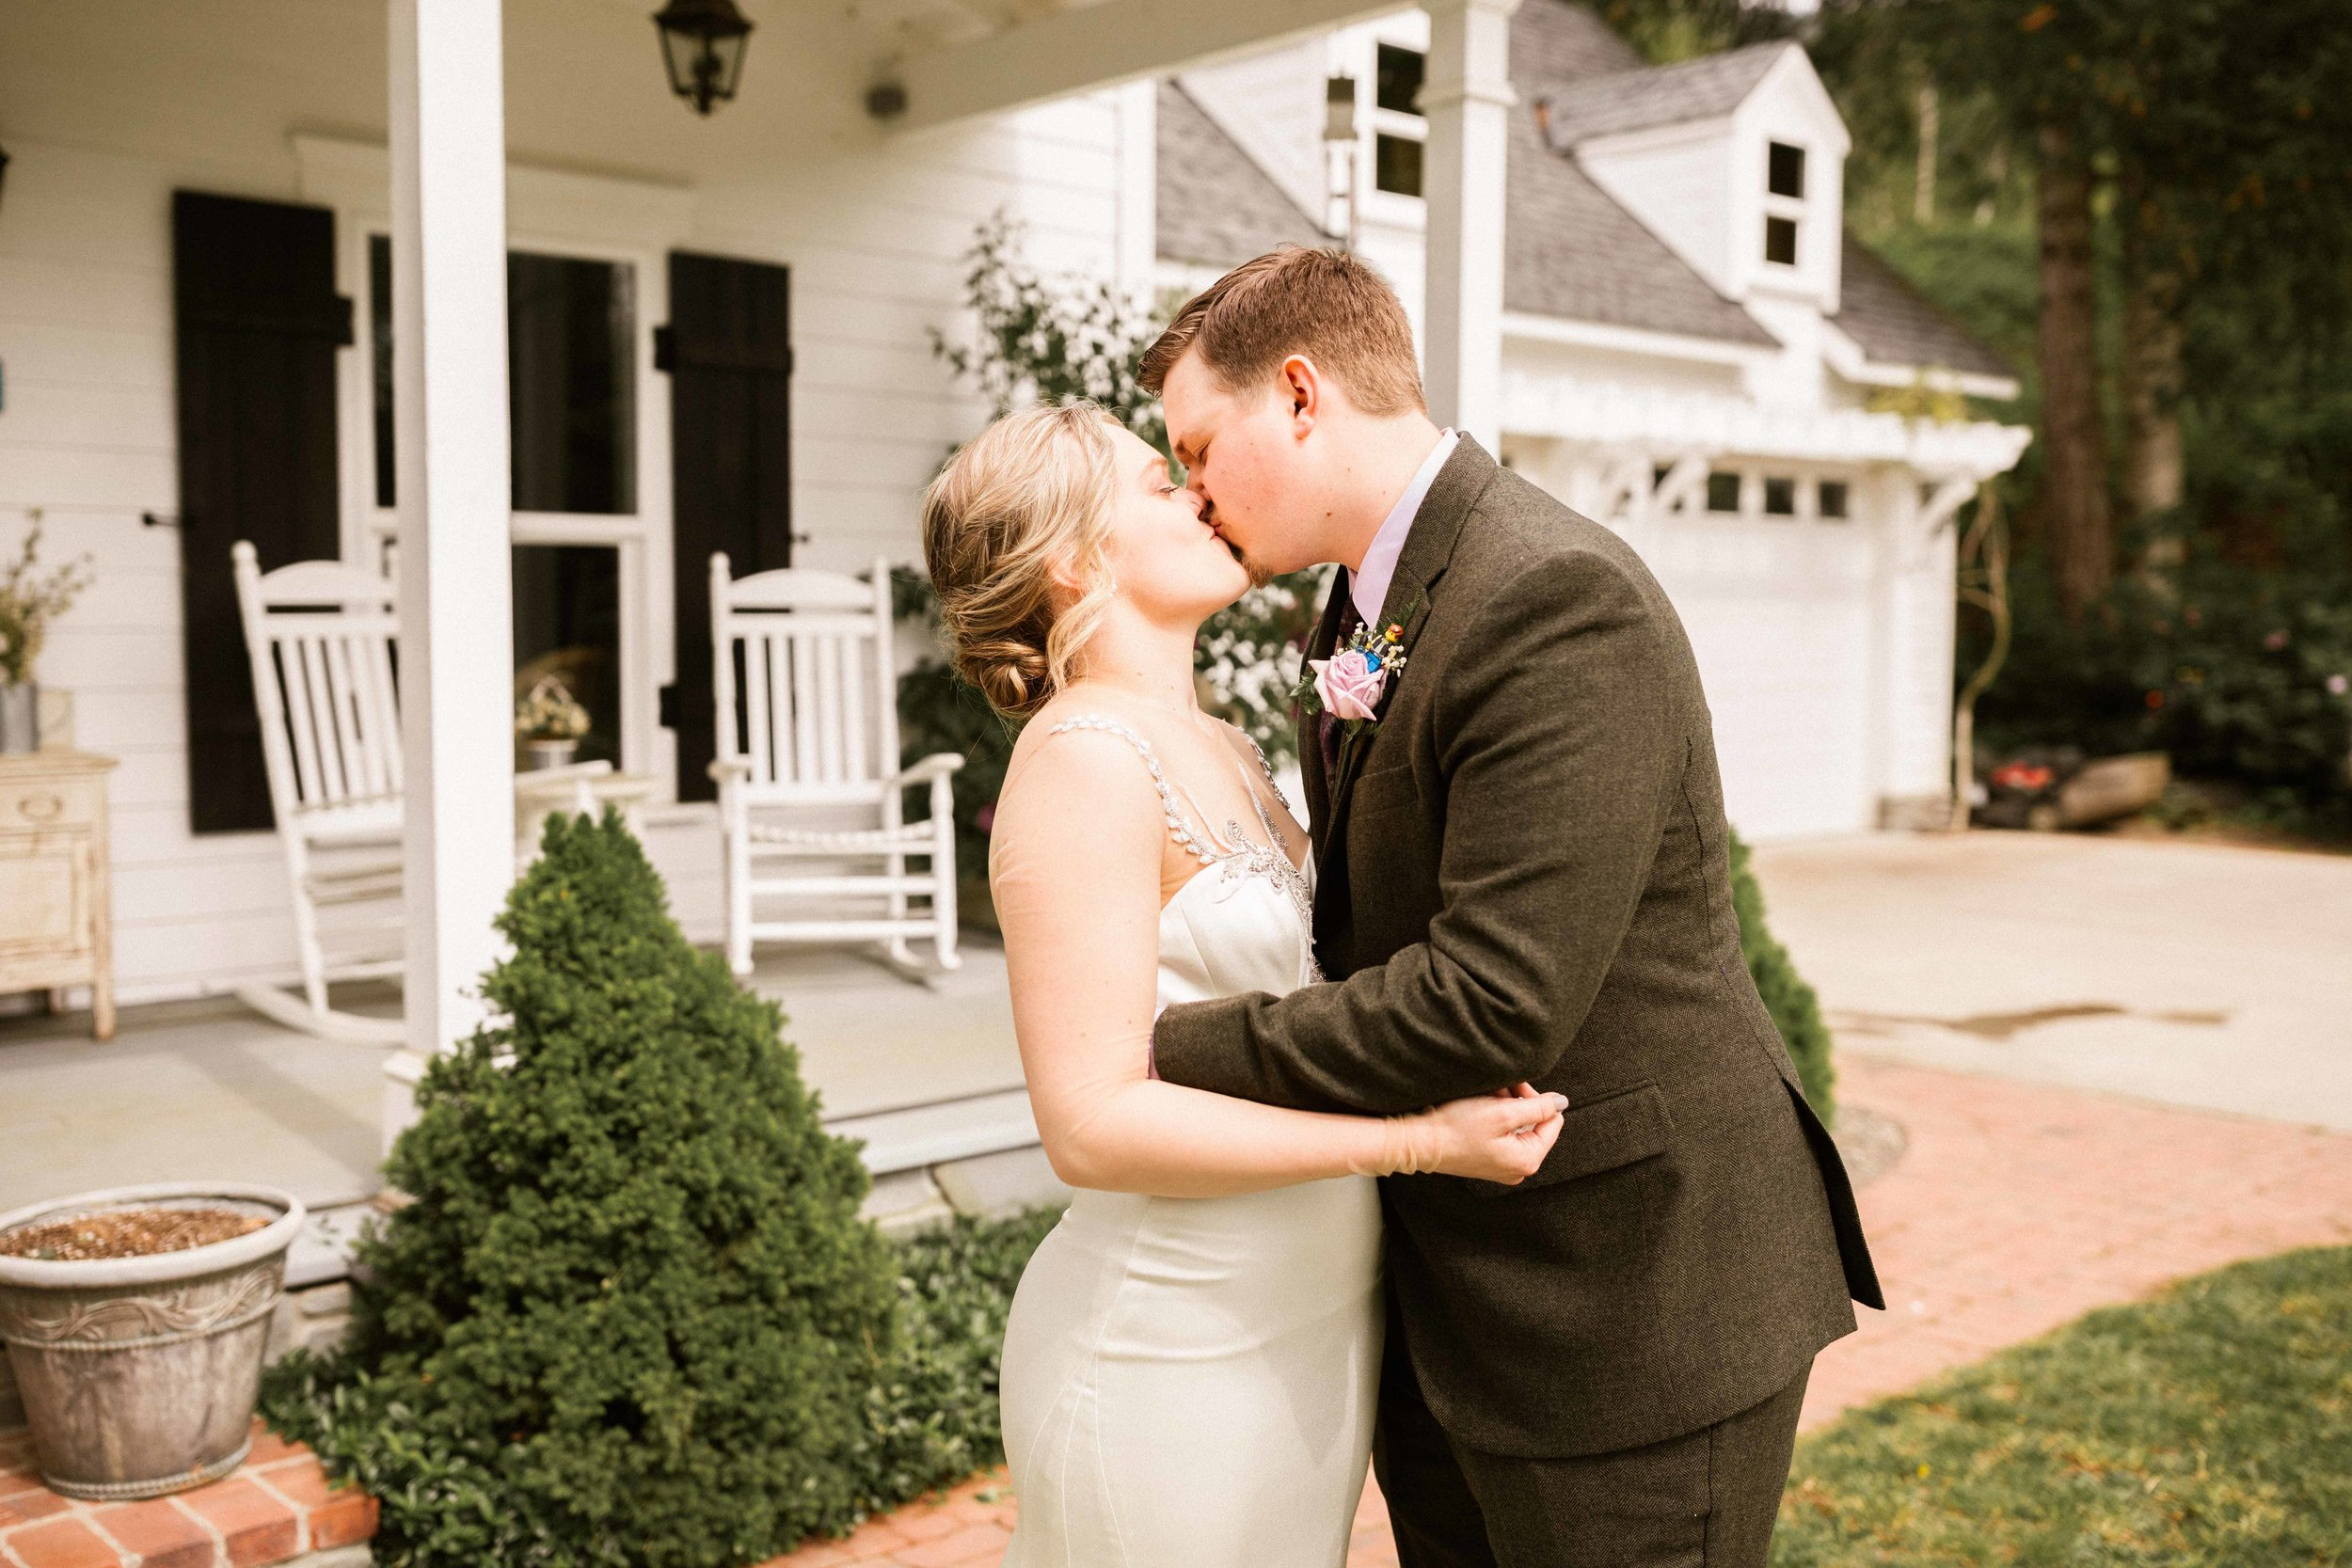 everson-barn-wedding-43.jpg